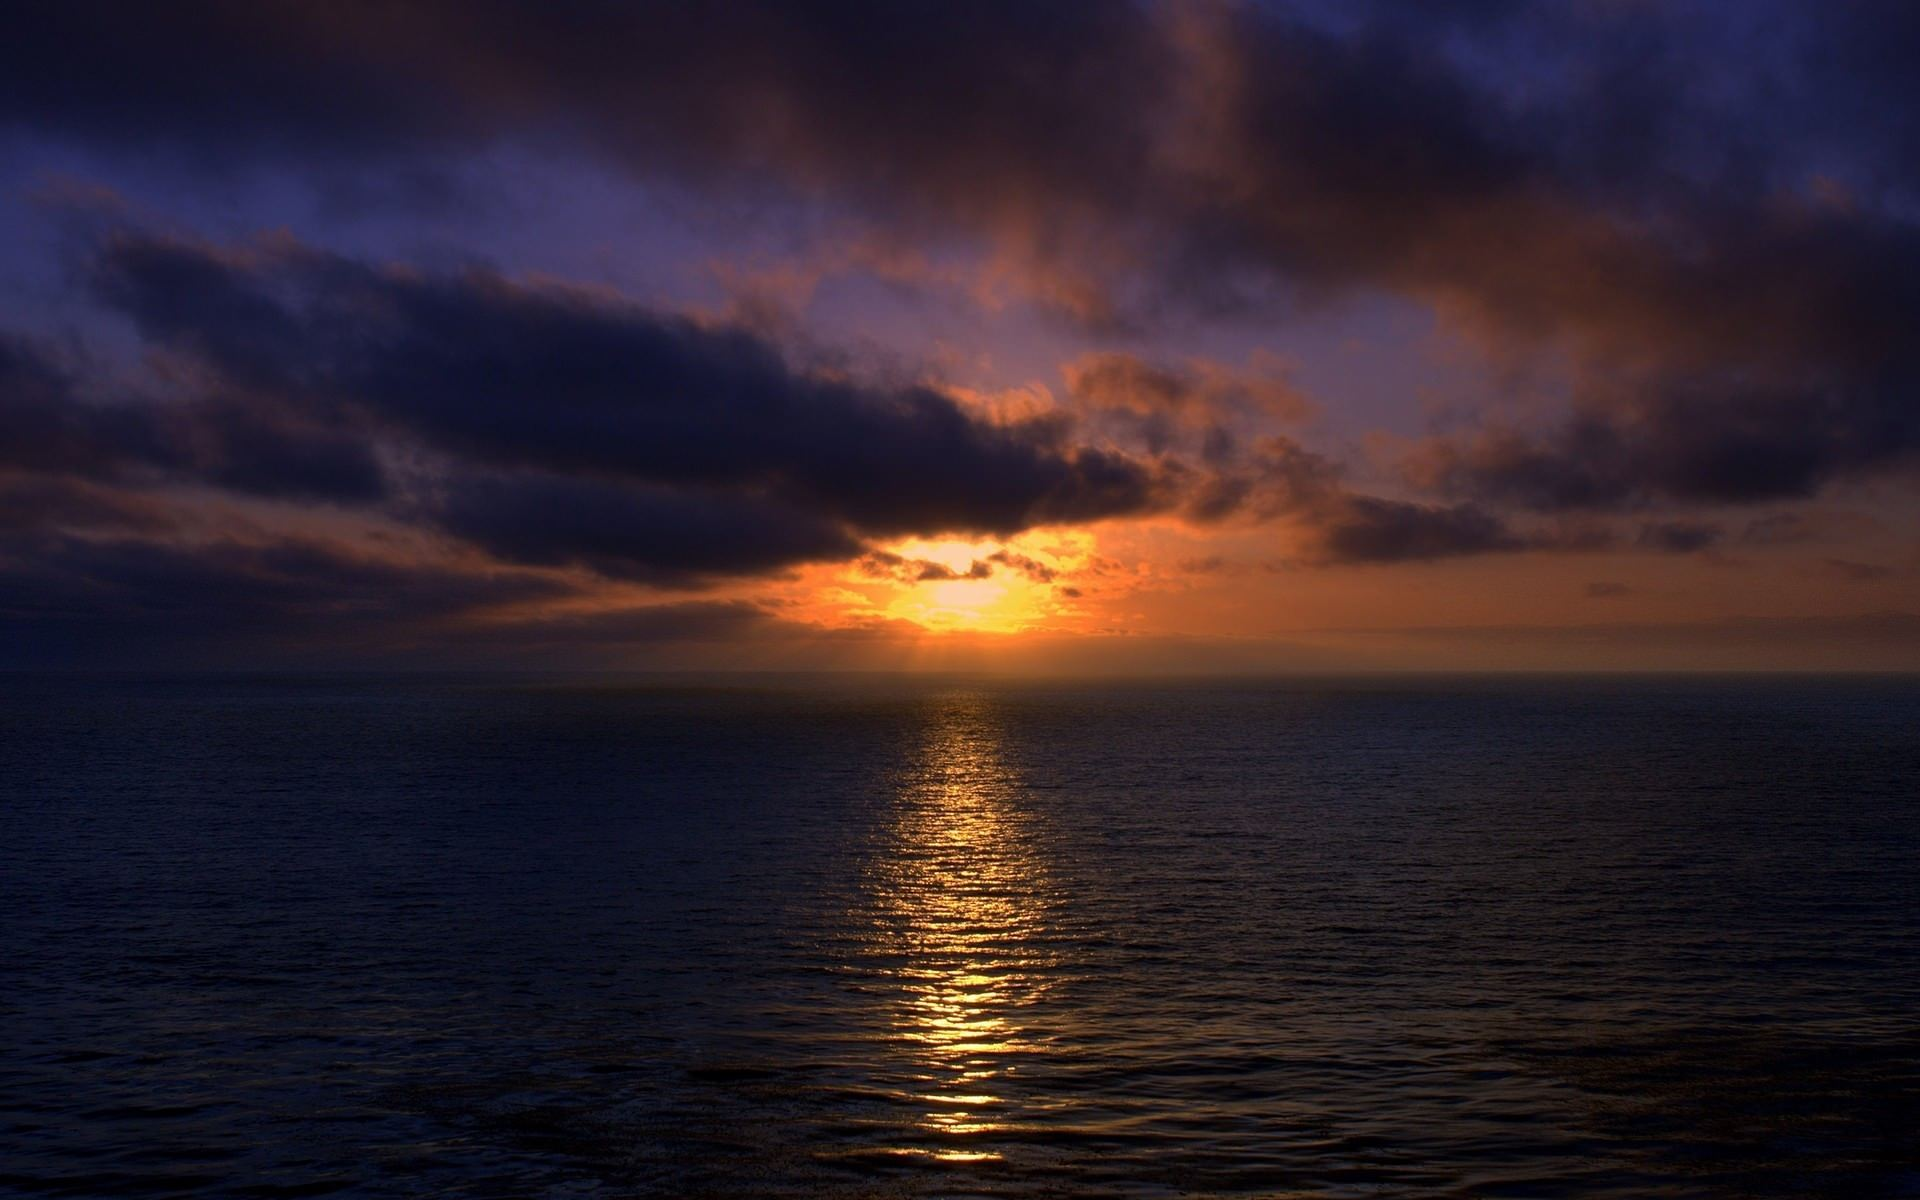 comwallpaperssunset wallpaperssunset over ocean wallpaper 1920x1200